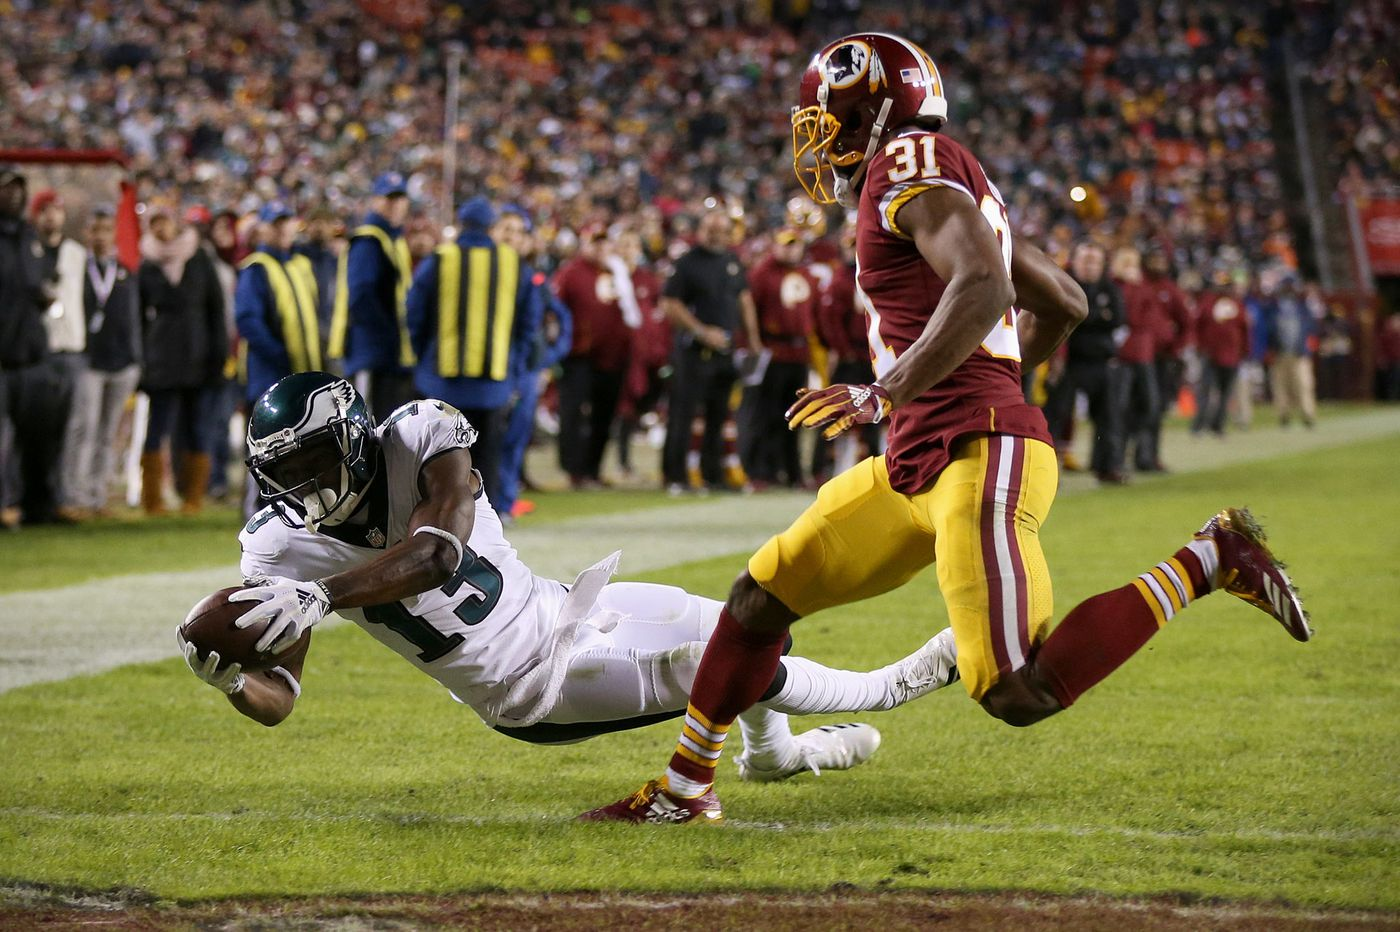 ae67fb6a Nelson Agholor was the not-so-unsung hero for Eagles in win over ...